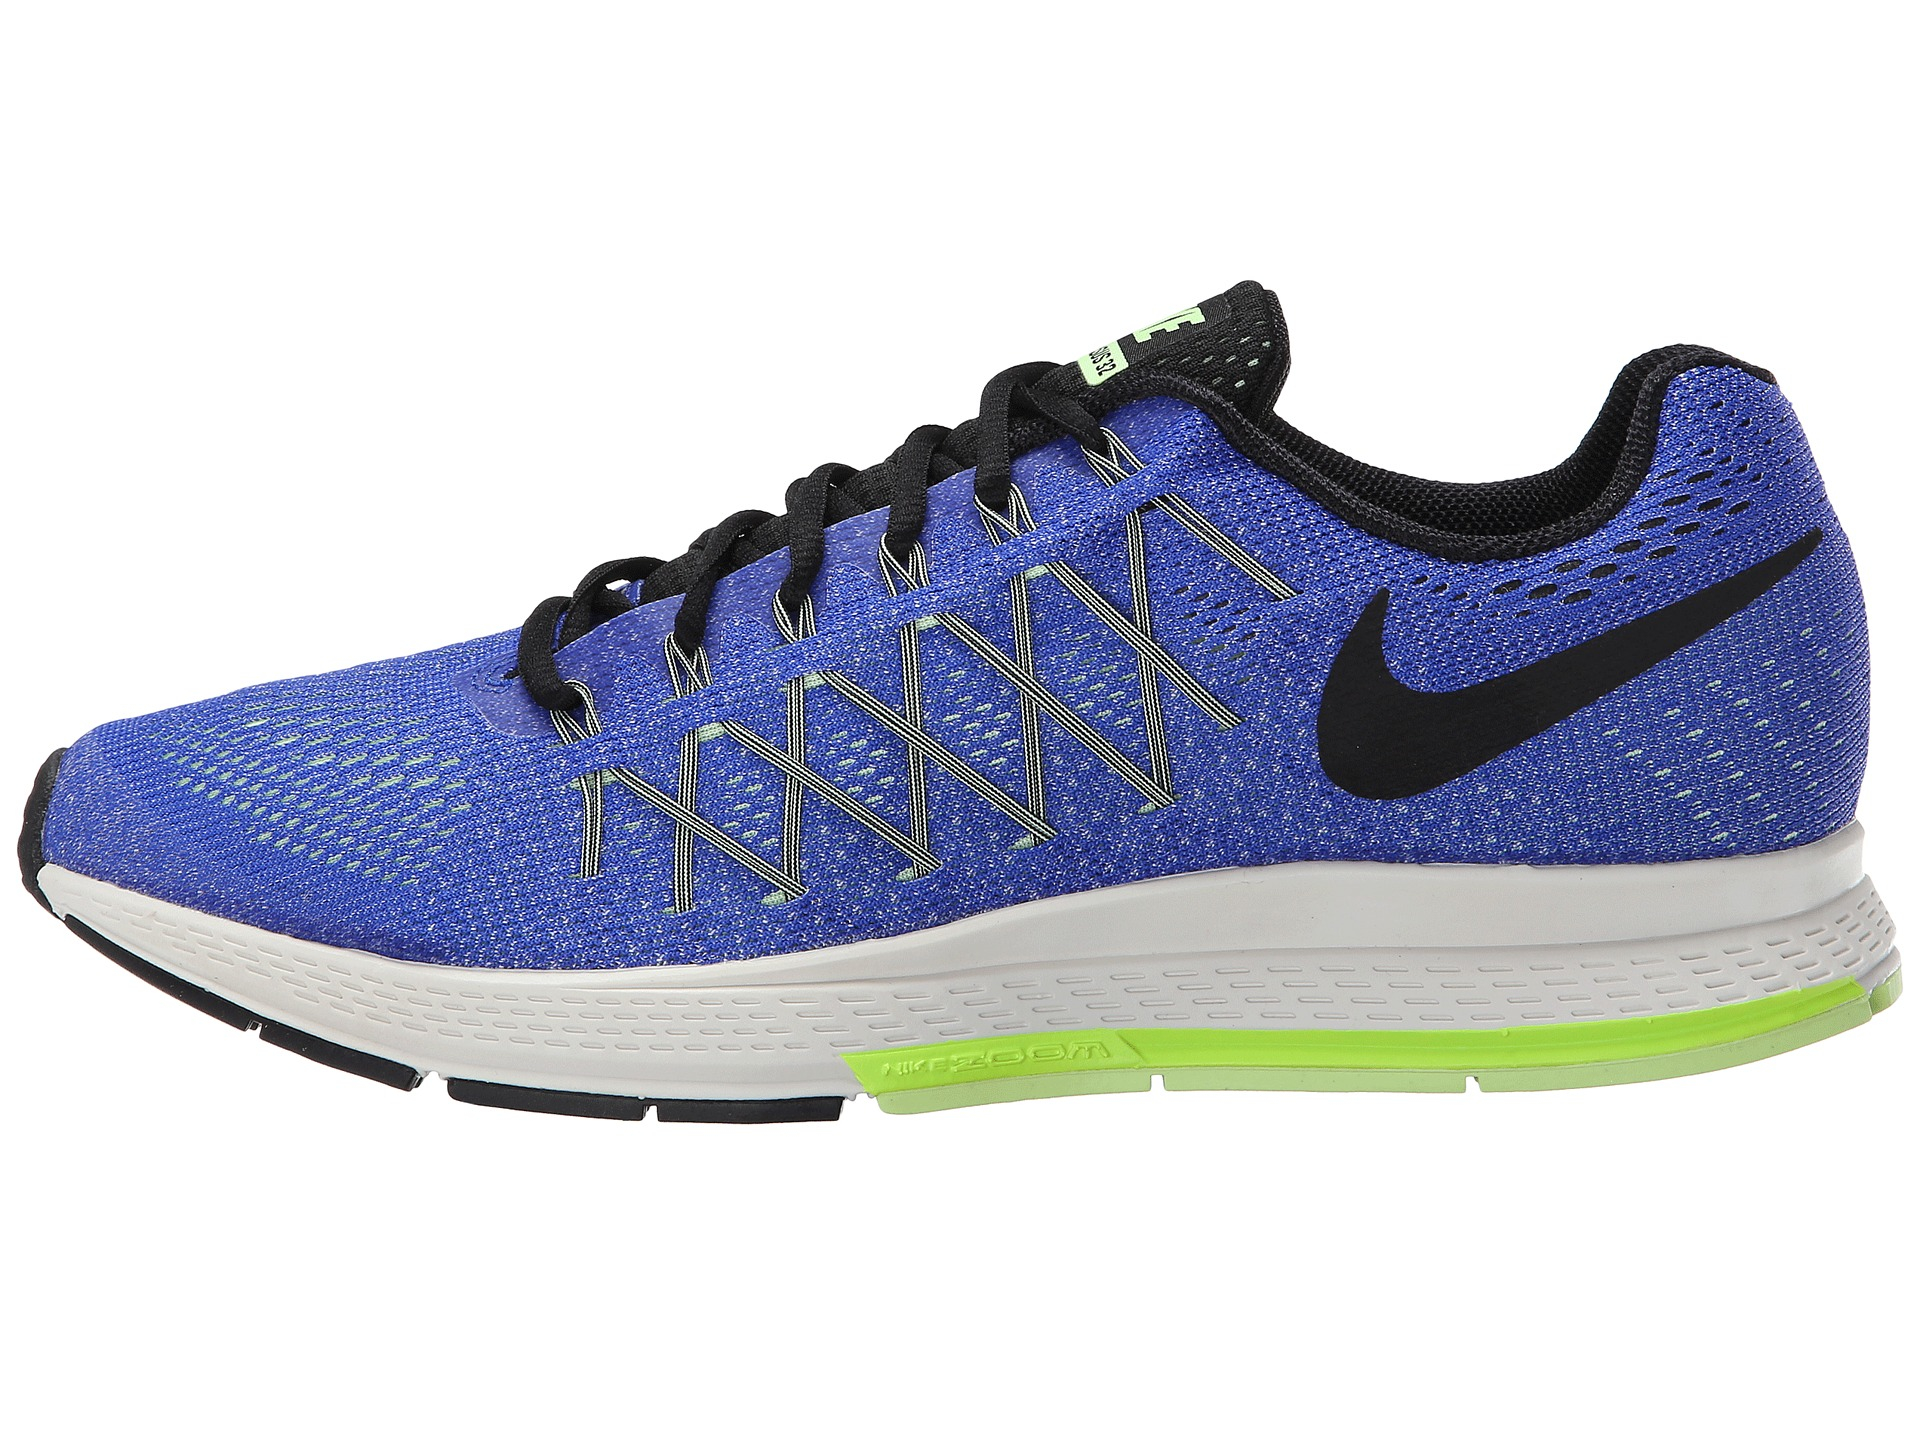 nike air zoom pegasus 32 in blue for men lyst. Black Bedroom Furniture Sets. Home Design Ideas